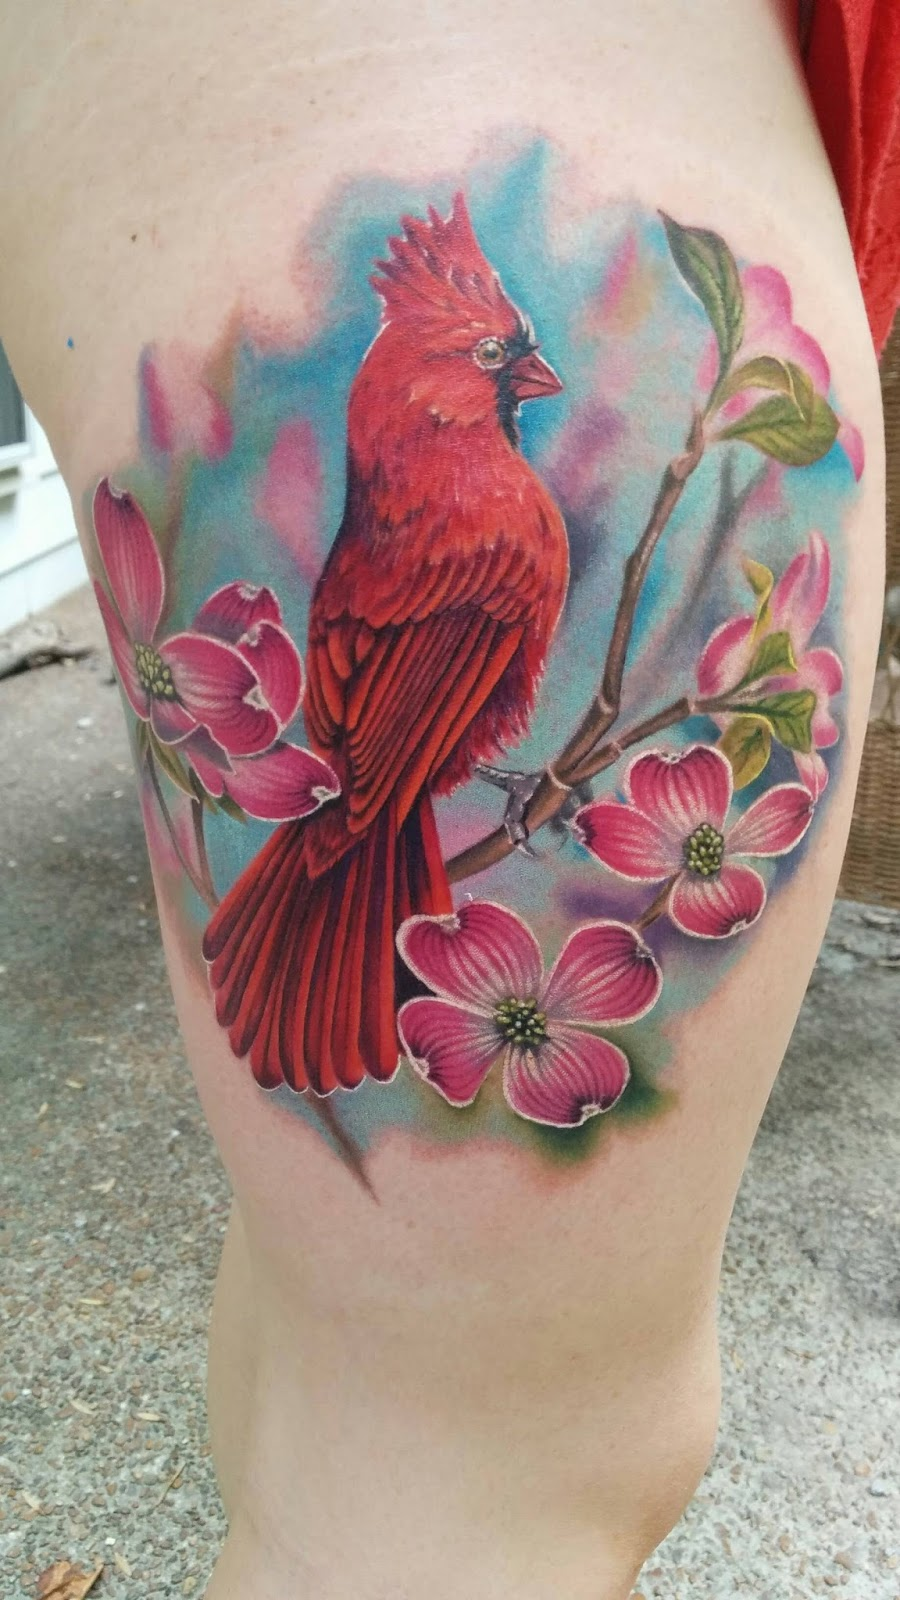 Tattoo Idea Bird: Awesome Inks: Tattoo Ideas, Inspiration, And Information